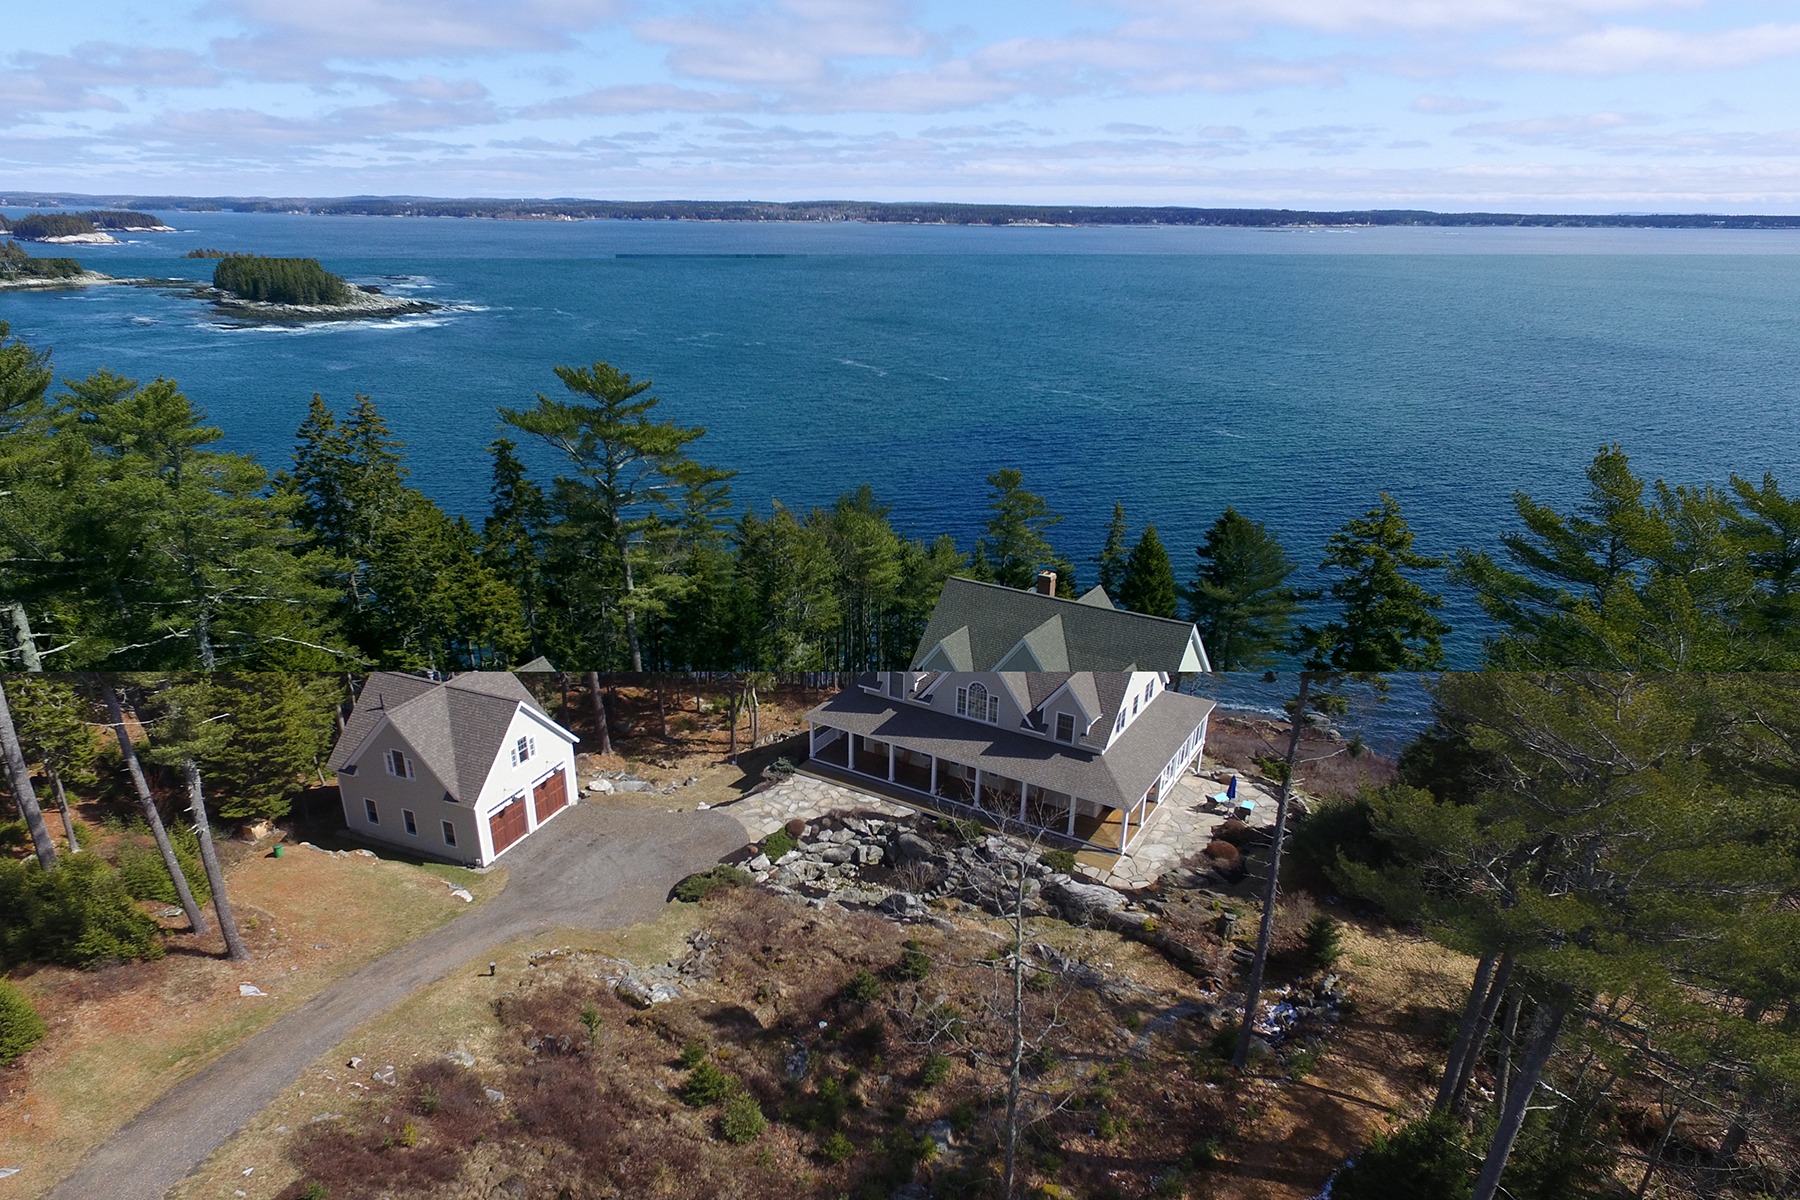 Single Family Home for Sale at MaryCliff 41 Ledge Island Lane Georgetown, Maine 04548 United States